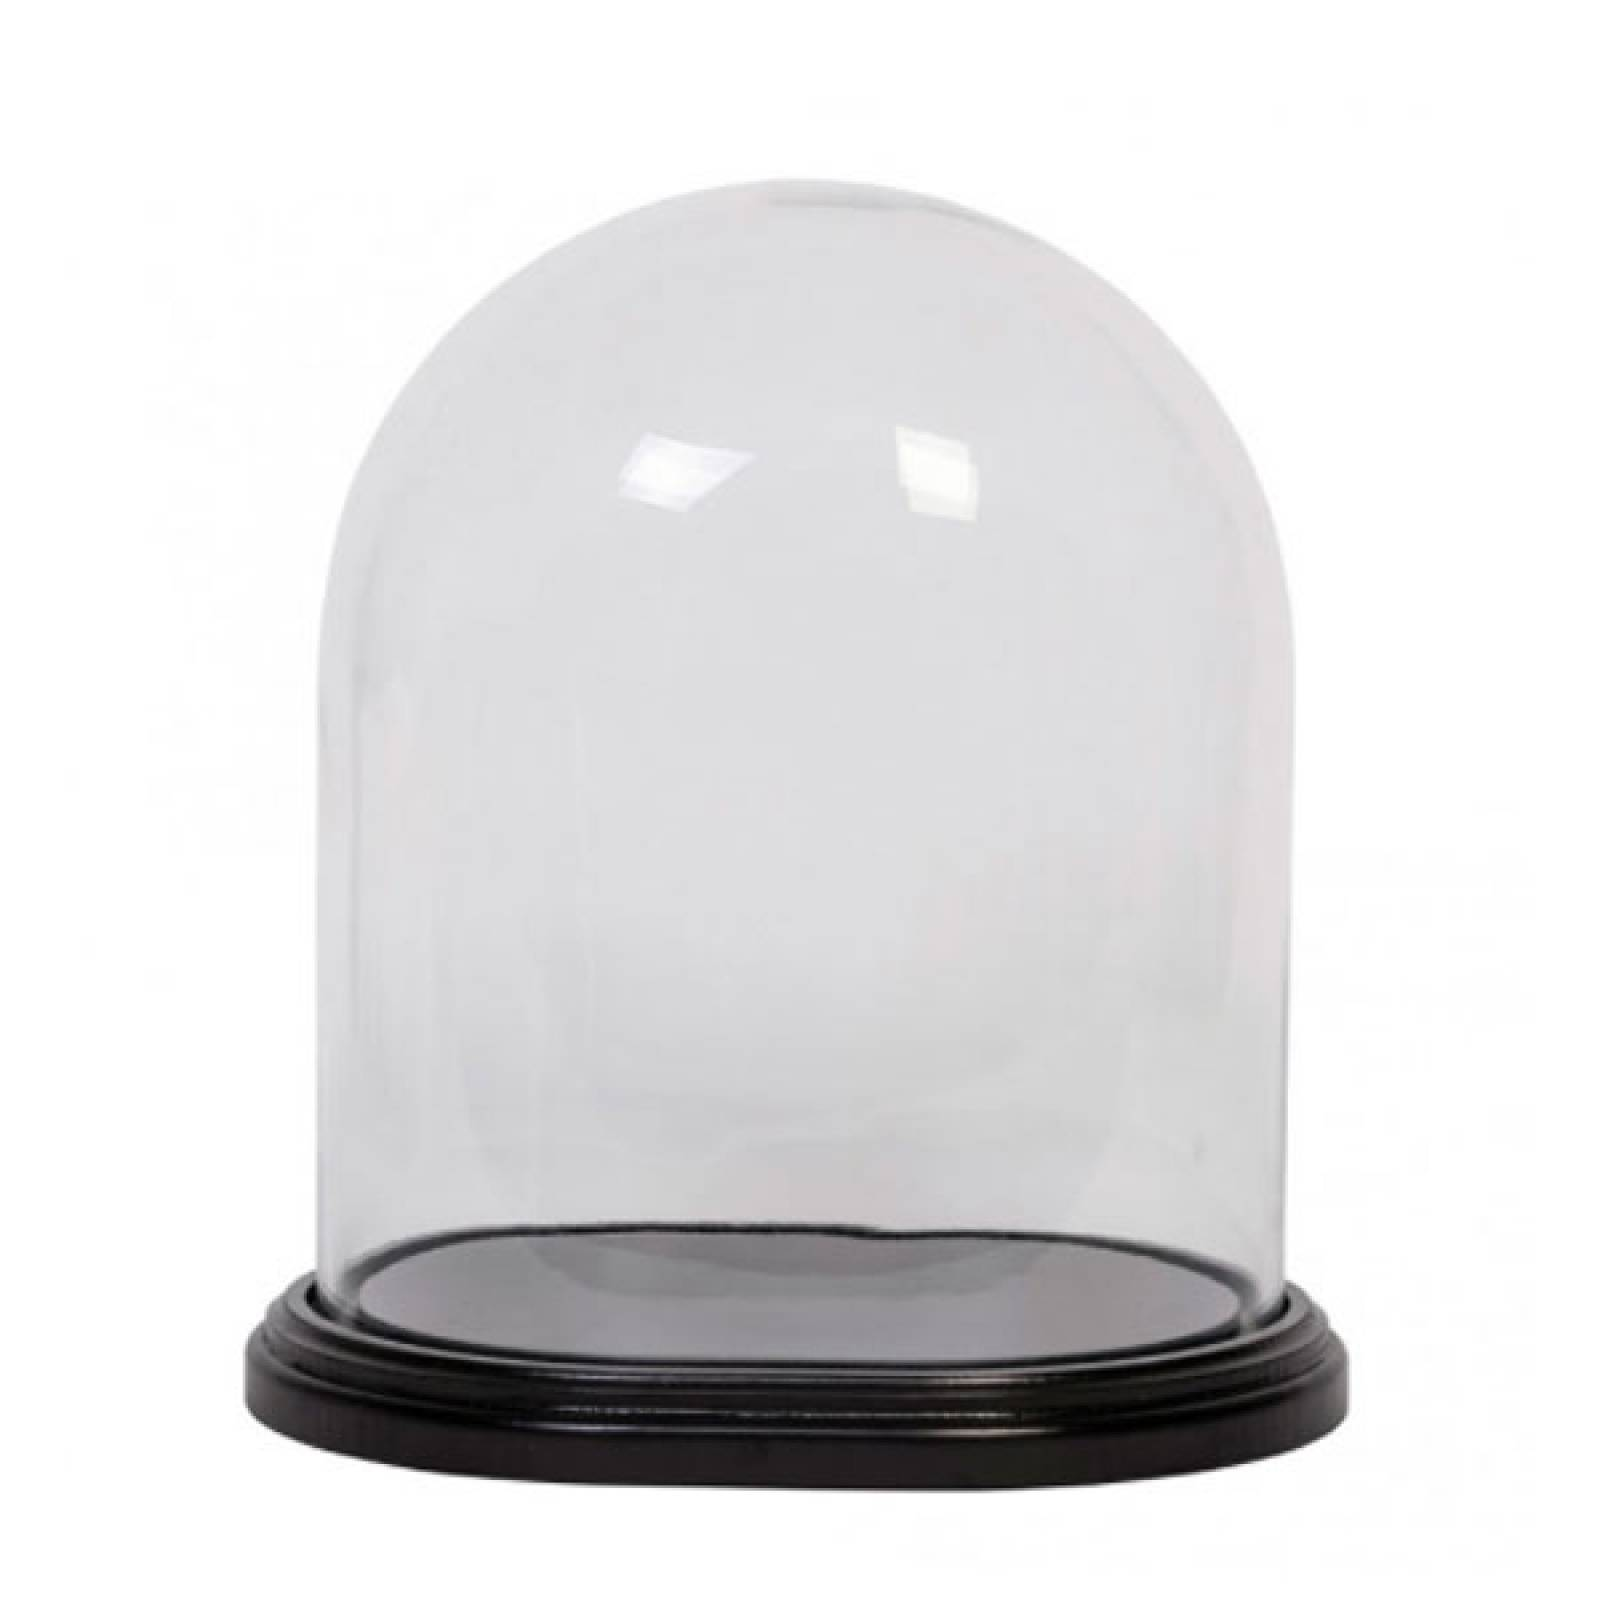 Large Oval Glass Dome And Base thumbnails